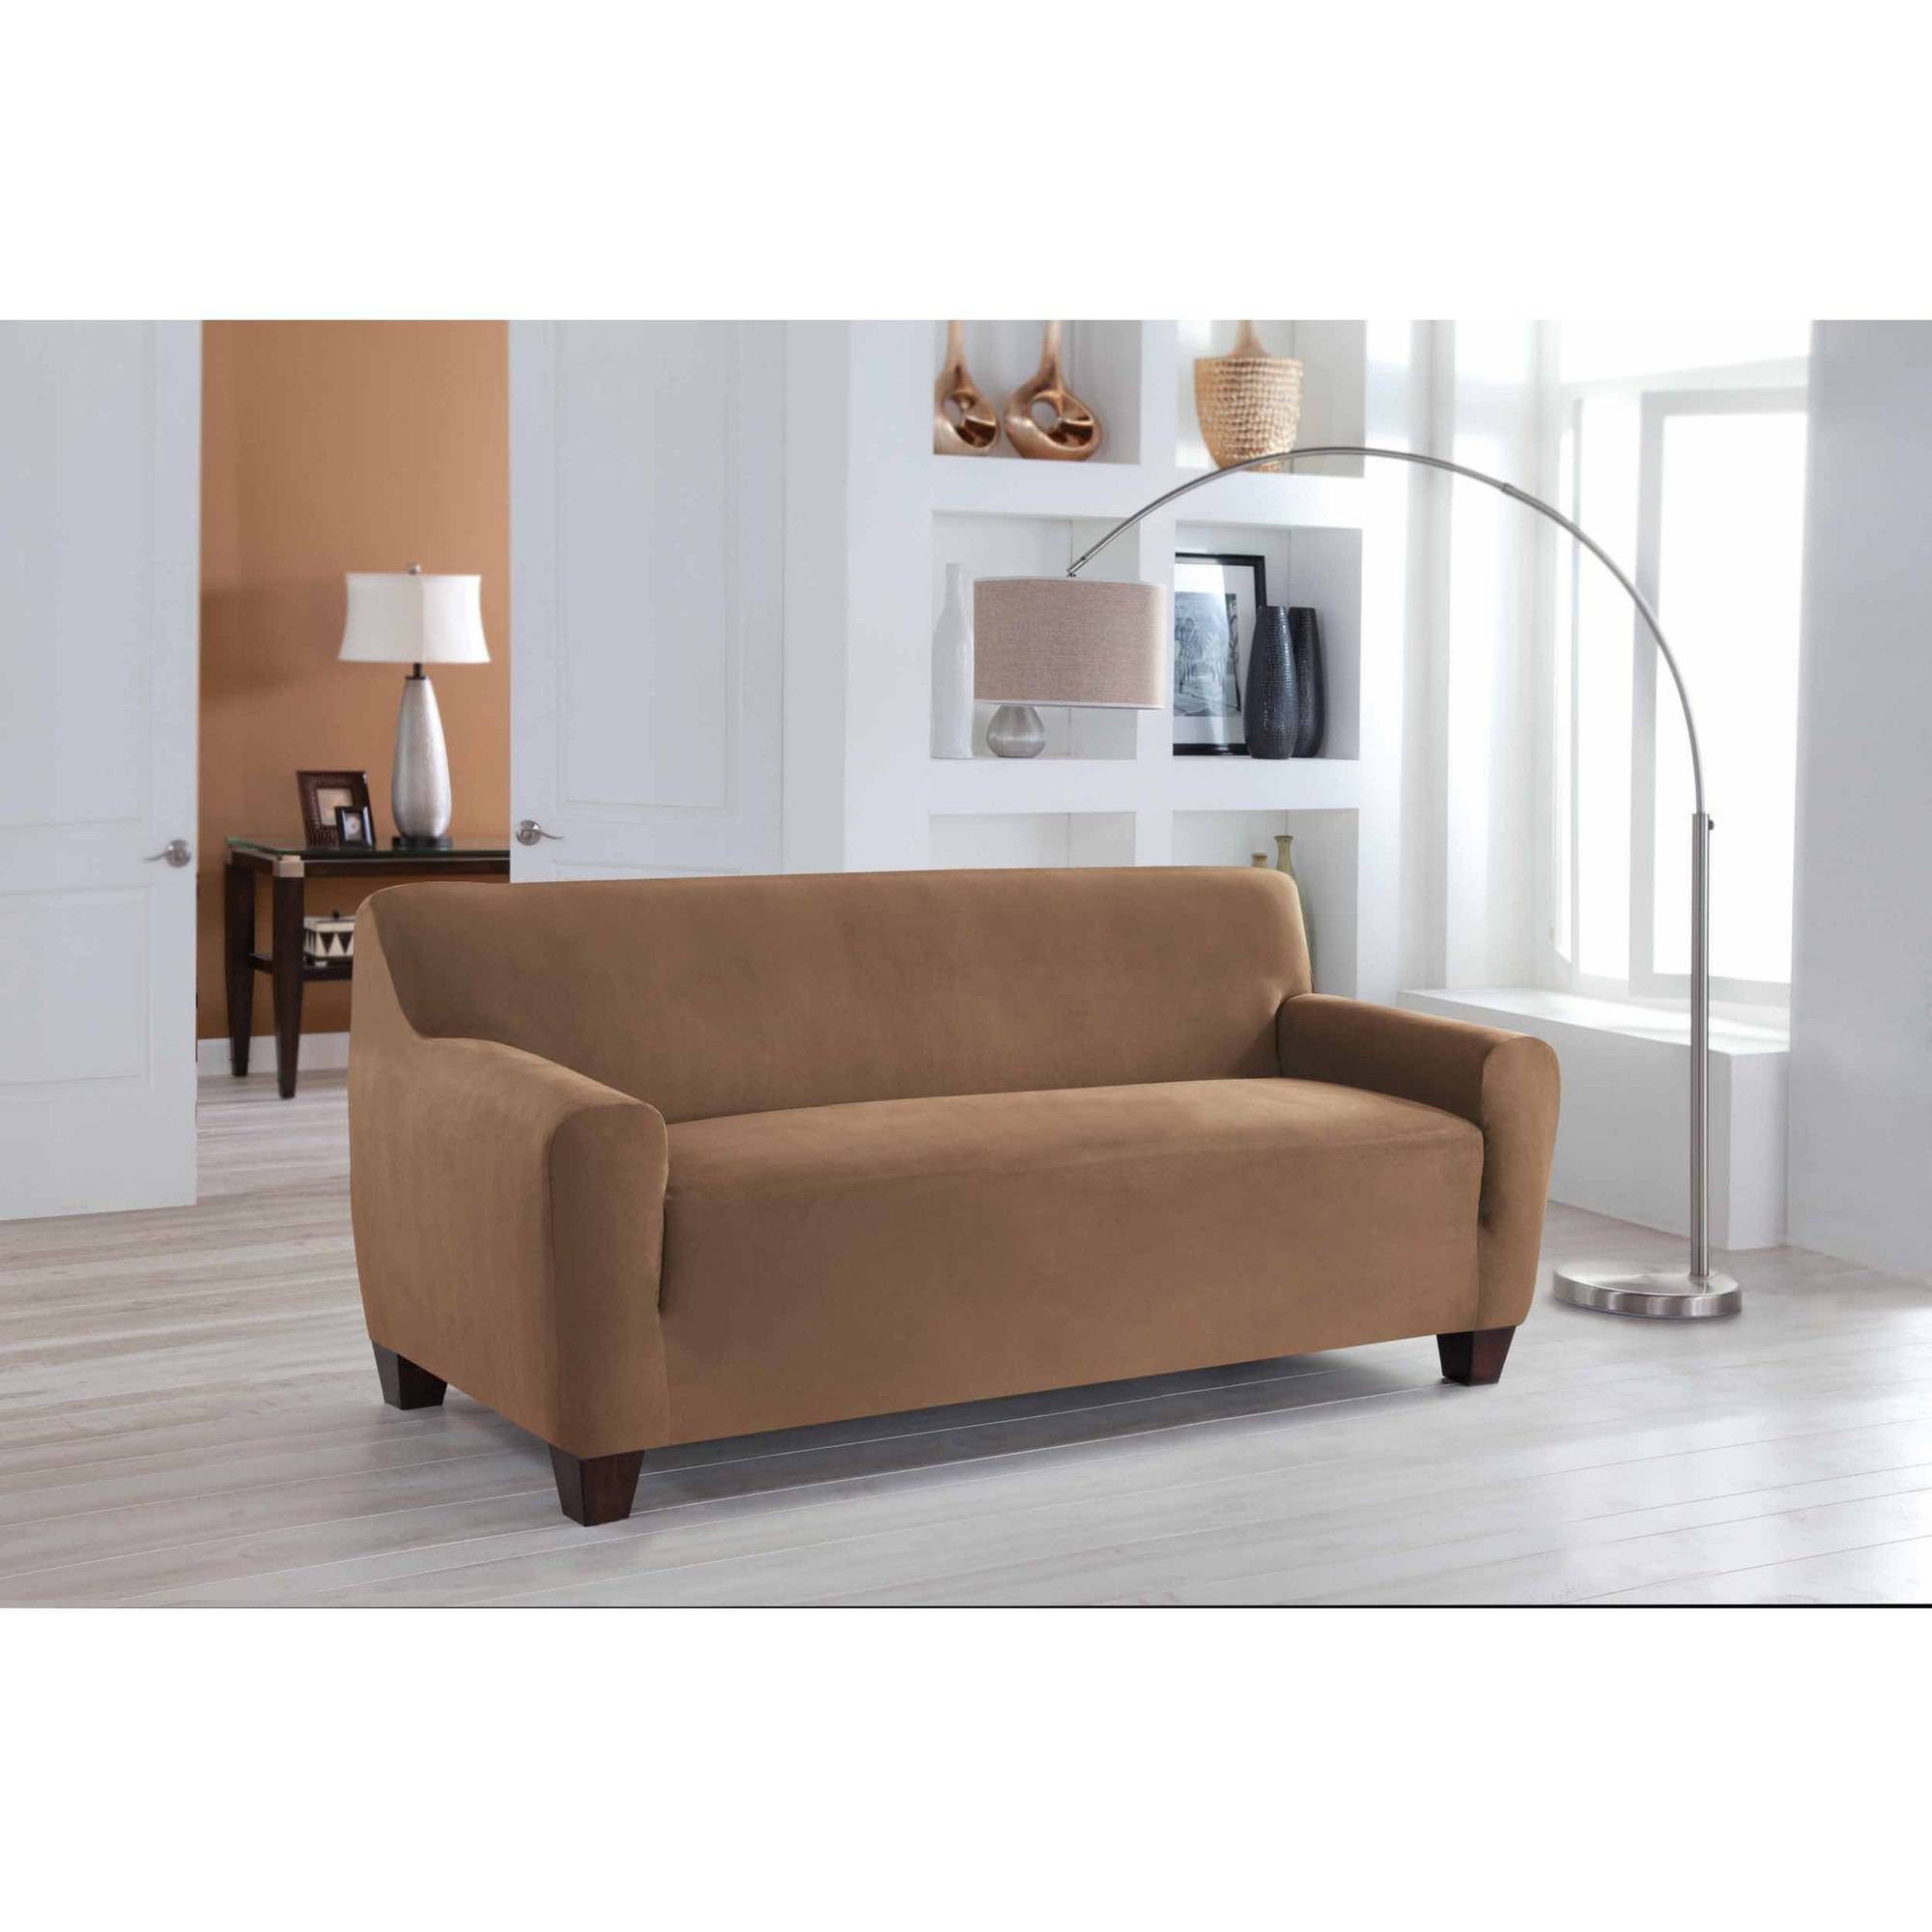 Serta Stretch Fit Microsuede Slipcover Sofa 1 Piece Box Cushion